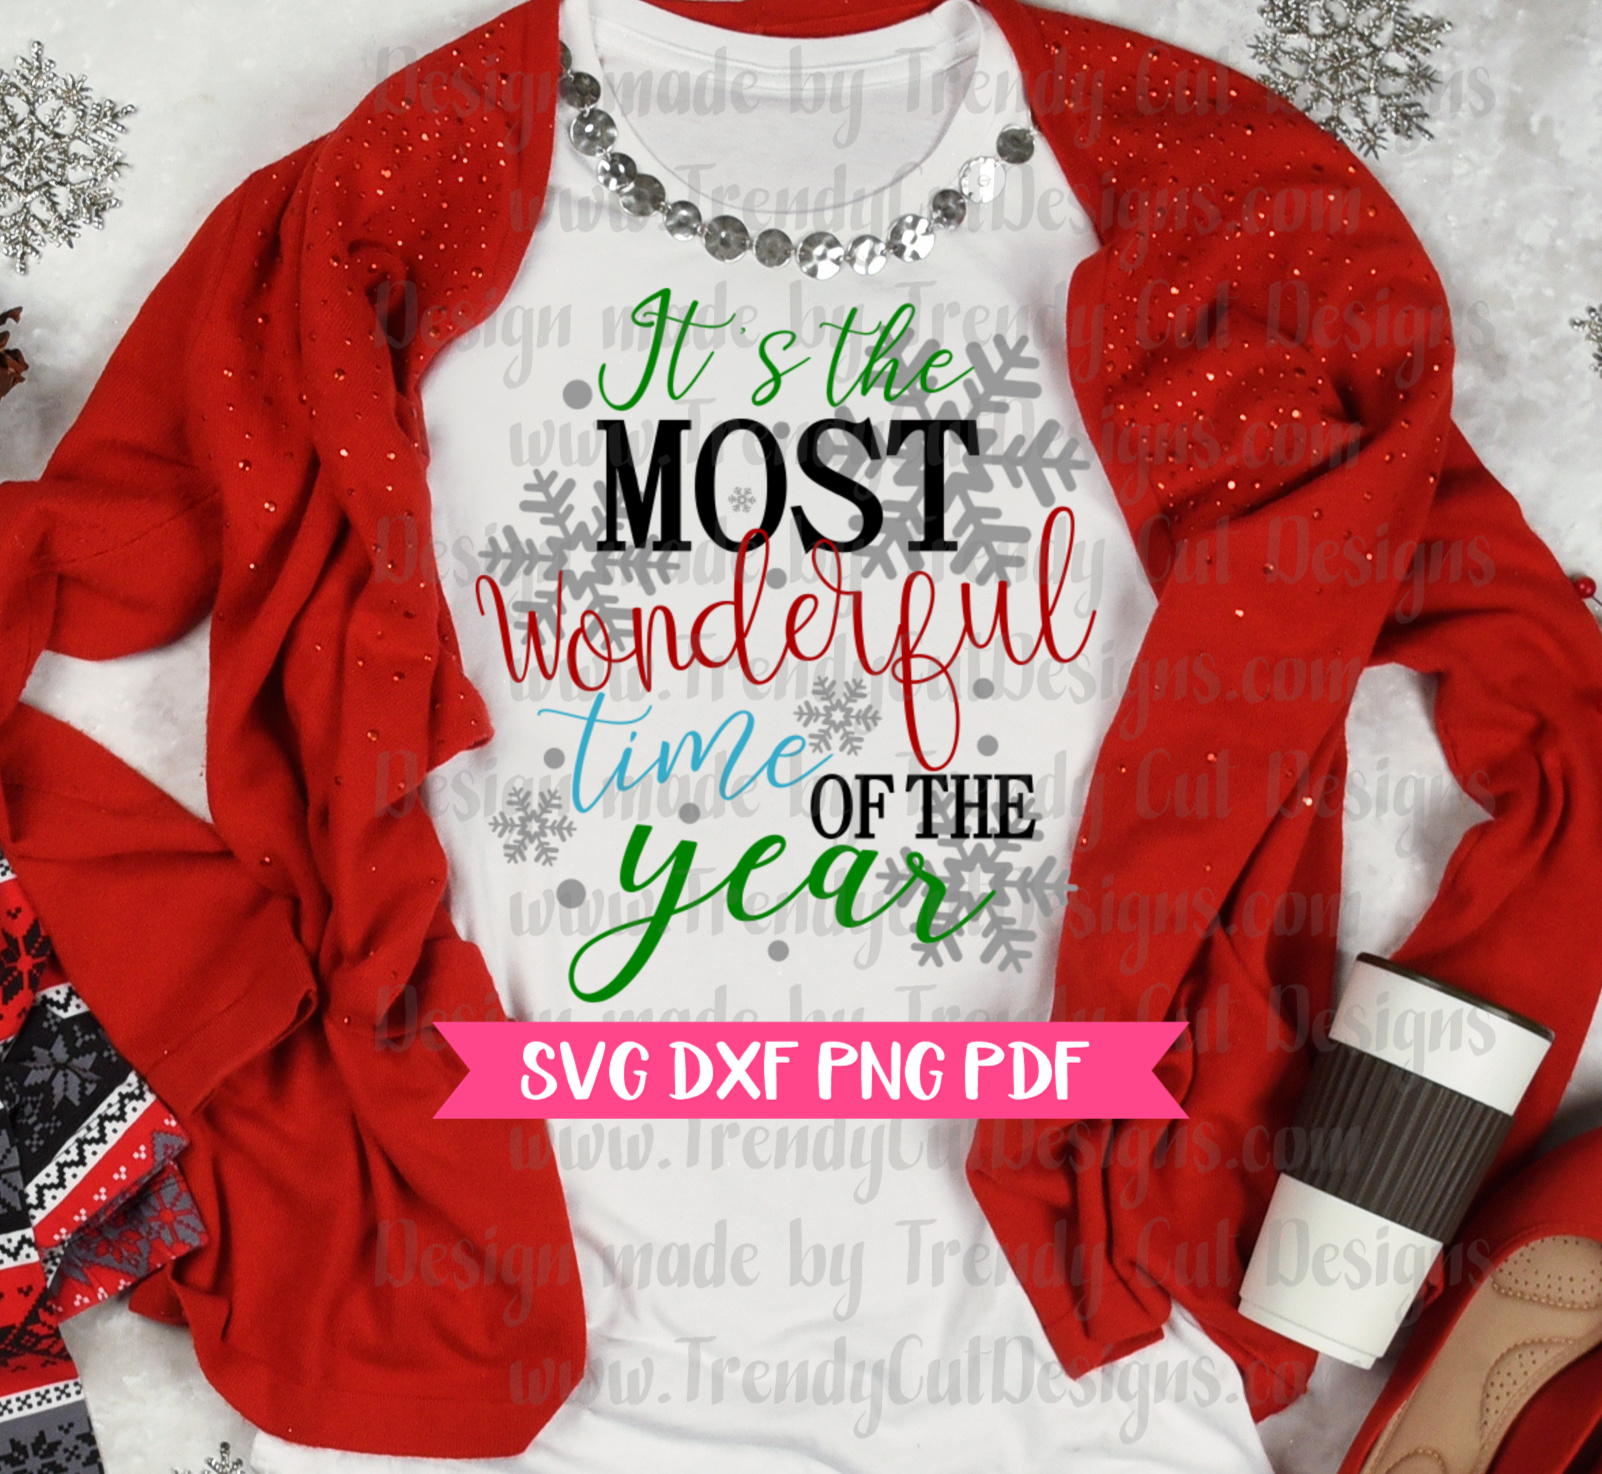 It's the Most Wonderful time of the Year SVG example image 2